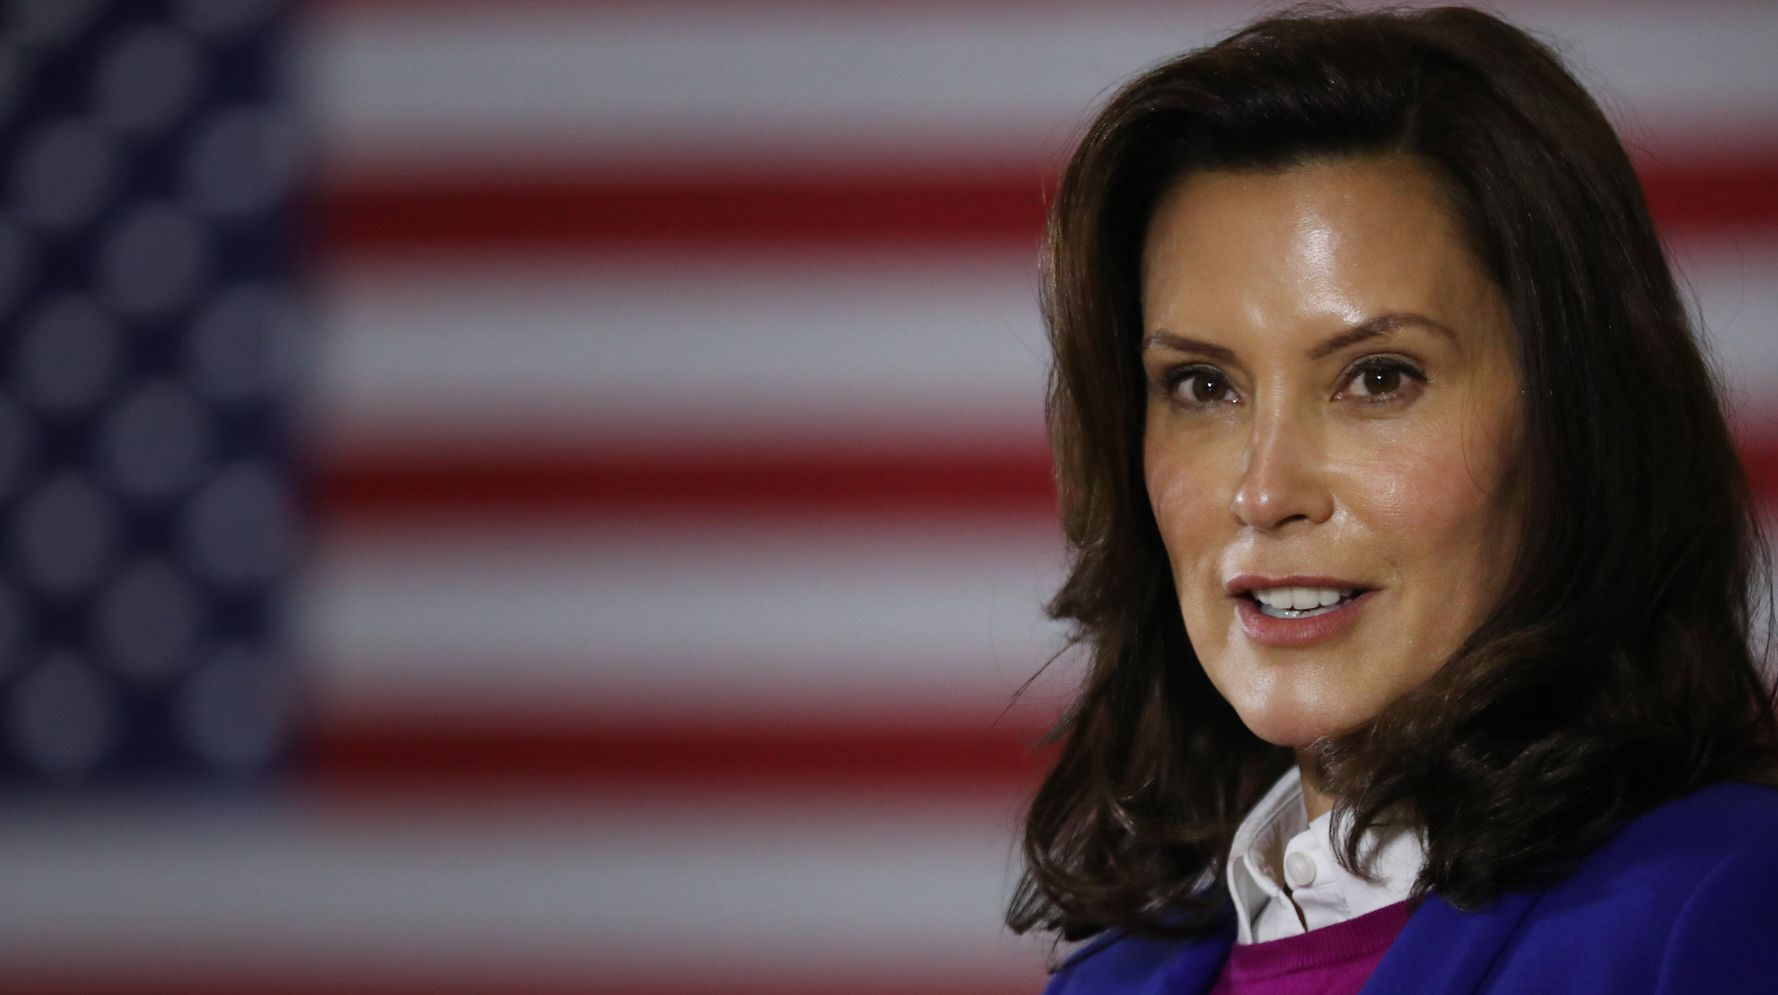 Trump Campaign Doubles Down On Attacks On Gov. Whitmer After Pushback